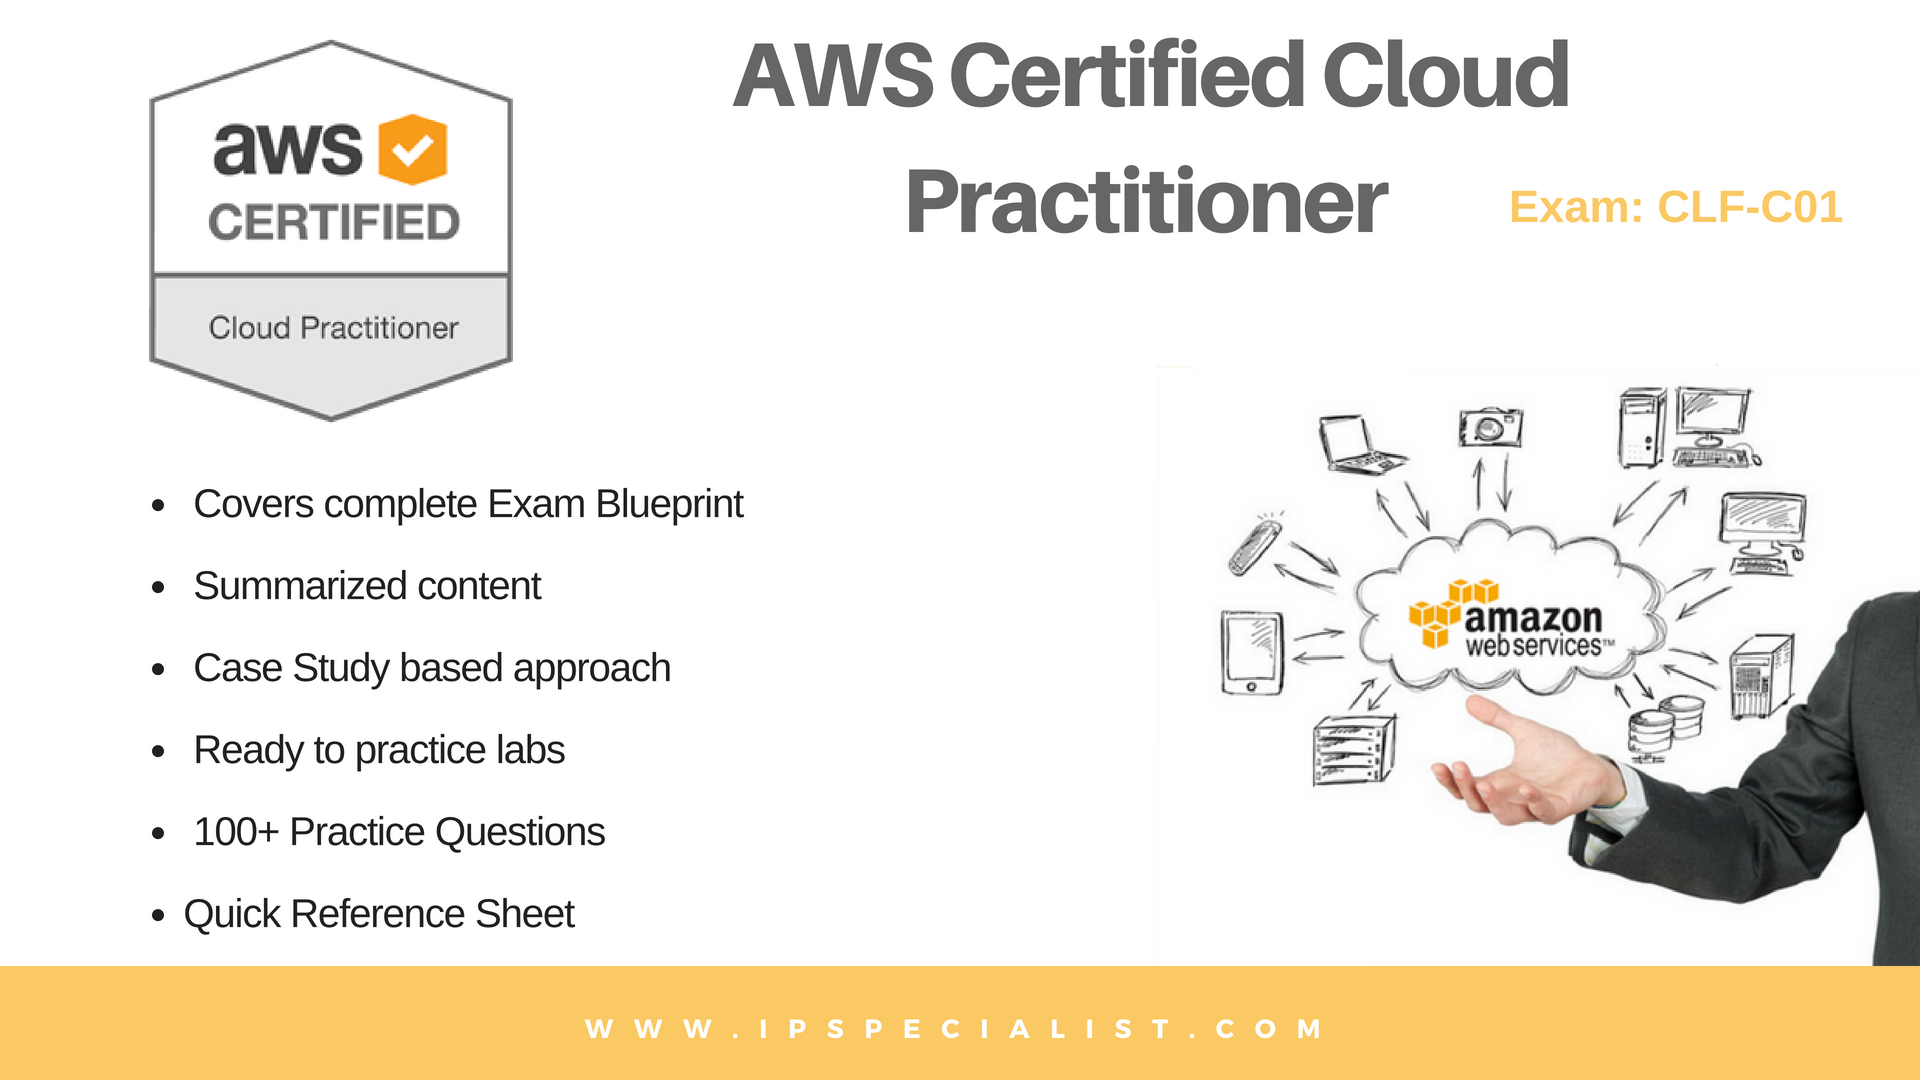 The AWS certified Cloud Practitioner CLF-C01 examination is